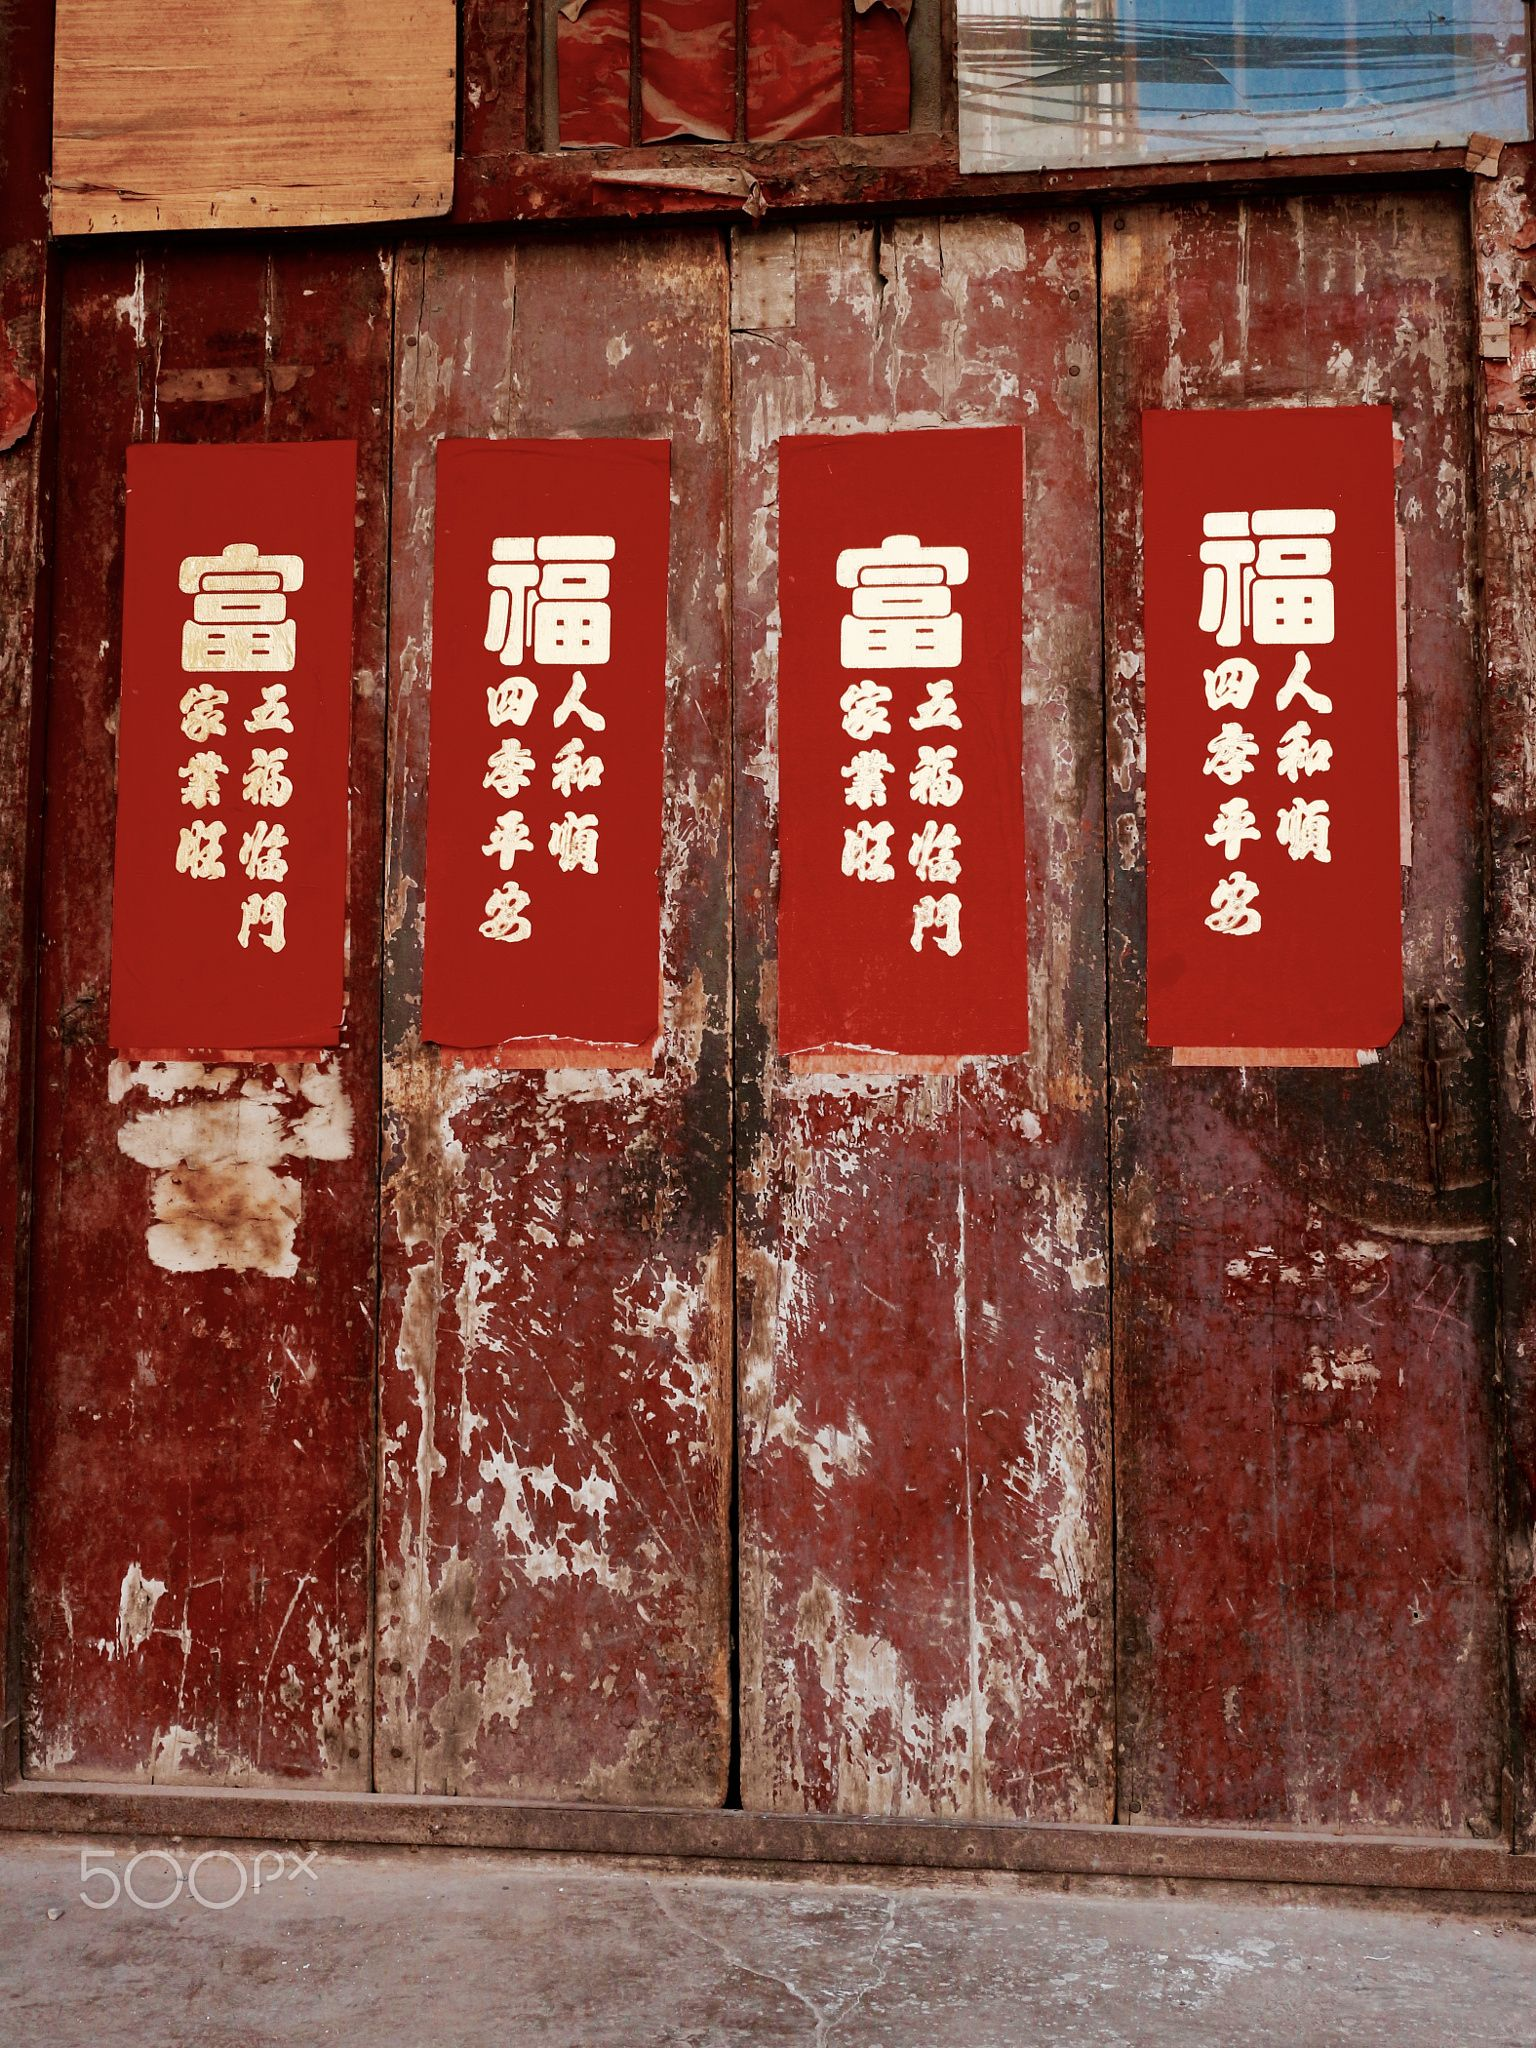 A Closed Door In Temple Ruzhou Henan Province China Displaying The Traditional Decoration For Chinese New Year And Spring Festival